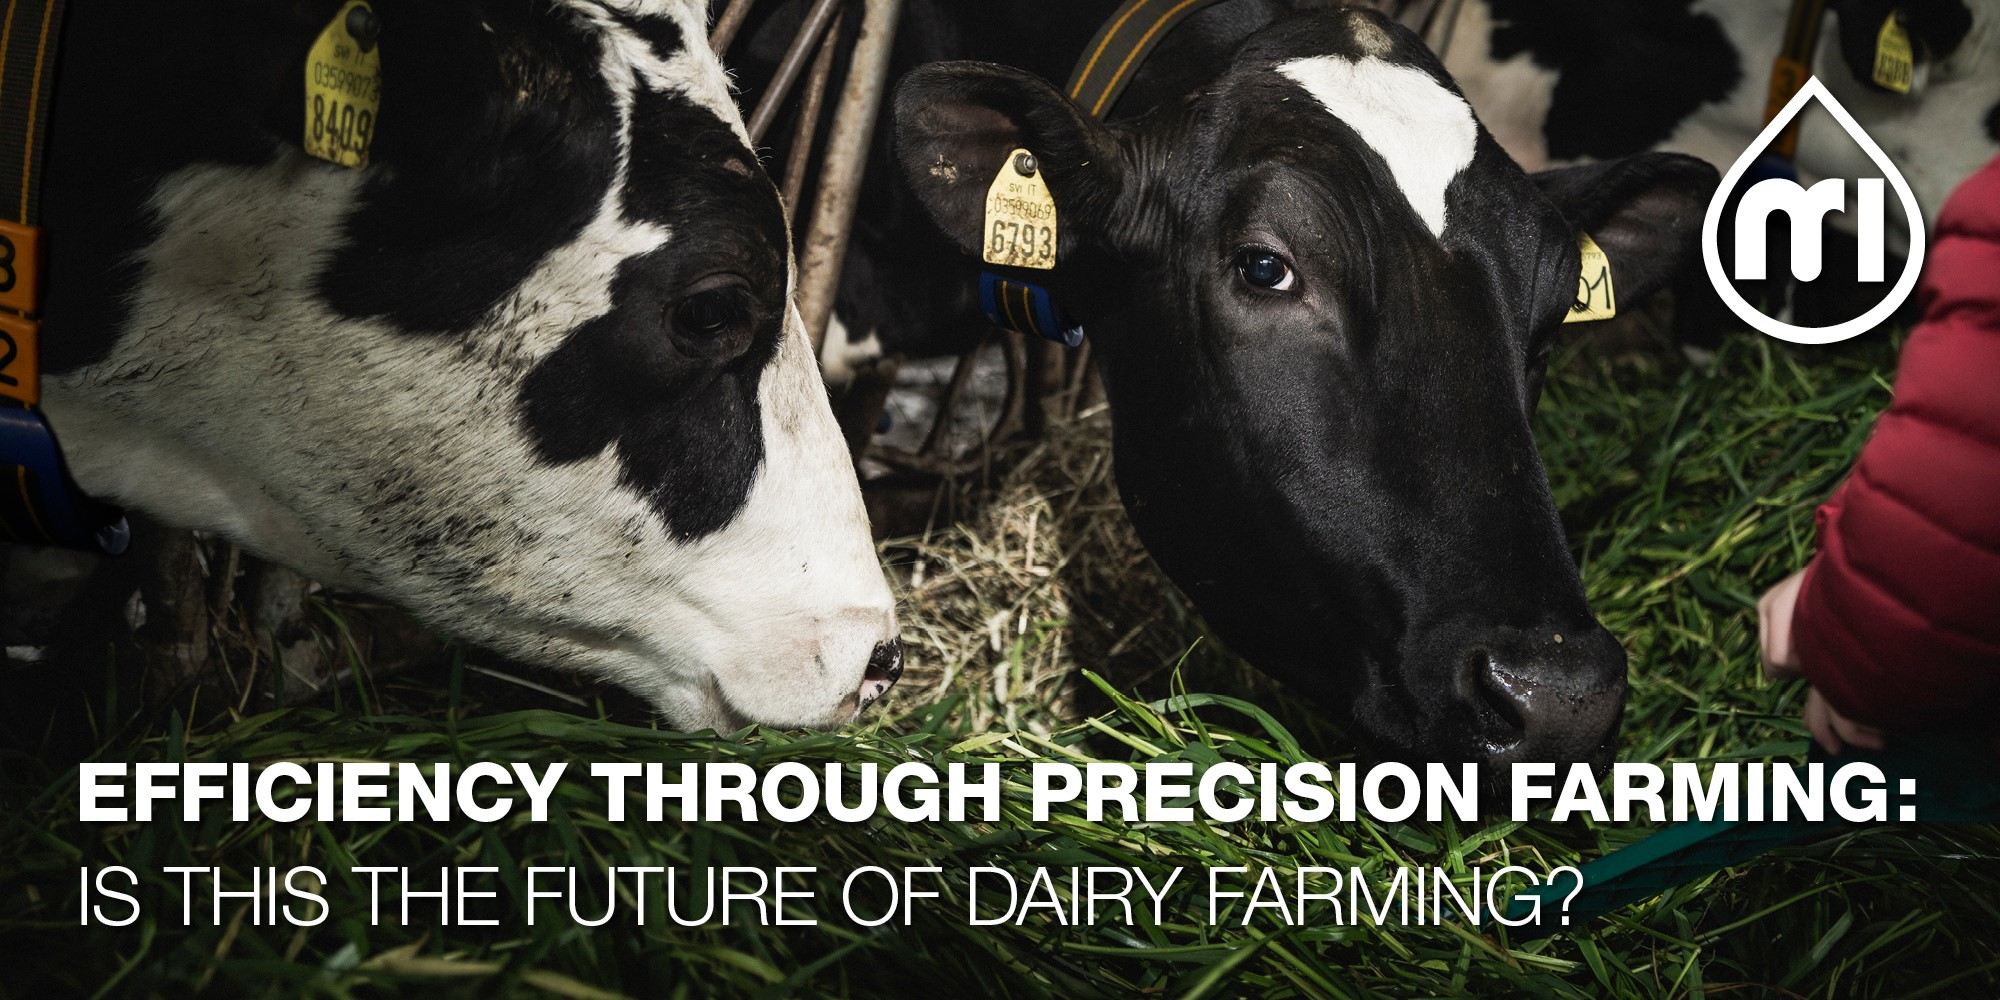 Efficiency through Precision Farming: is this the future of dairy farming? Part 2